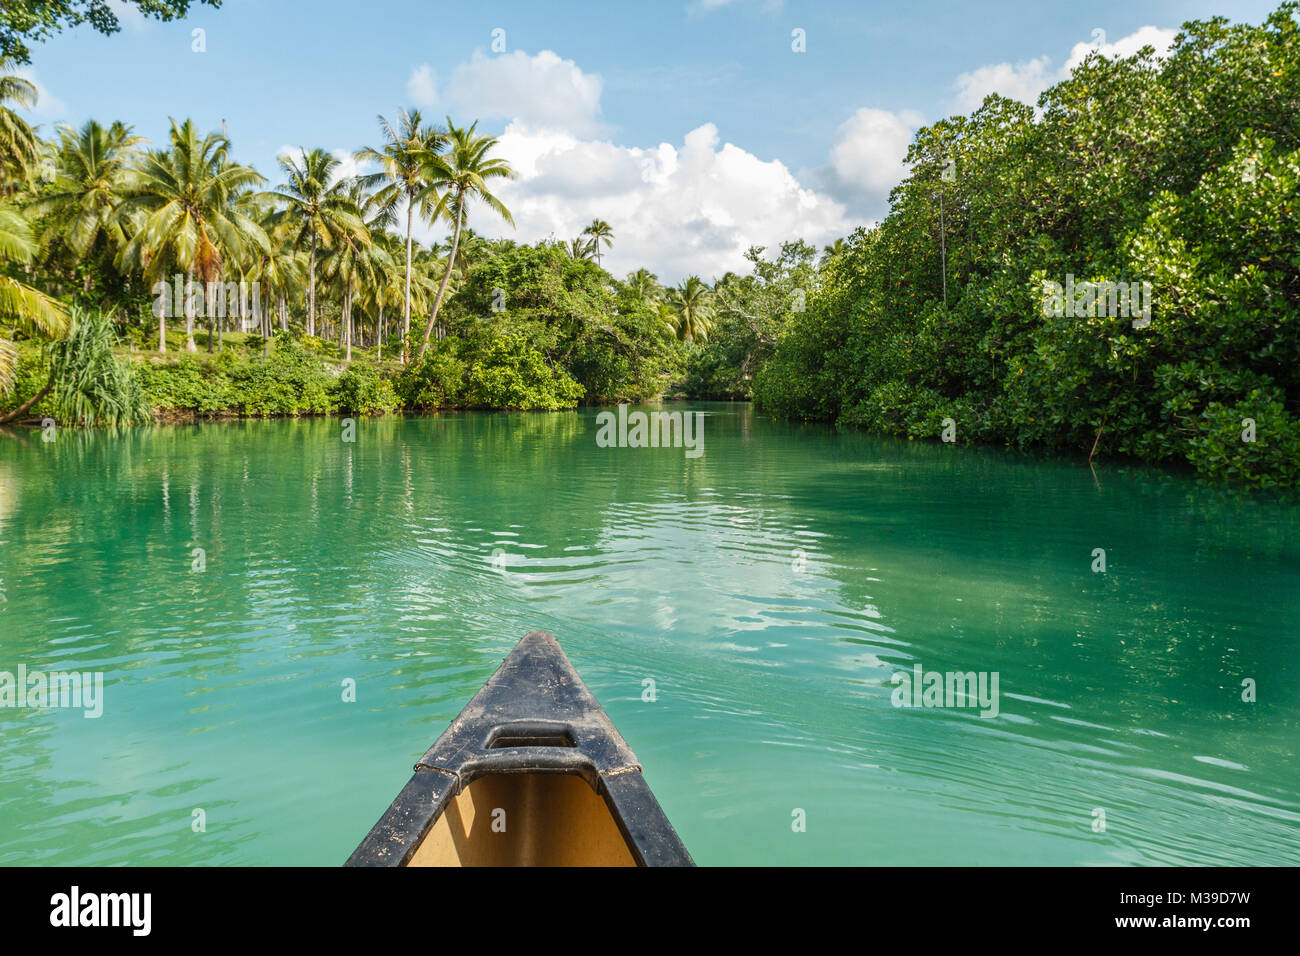 View of a Blue Hole from a boat. Ratua Private Island, Republic of Vanuatu - Stock Image